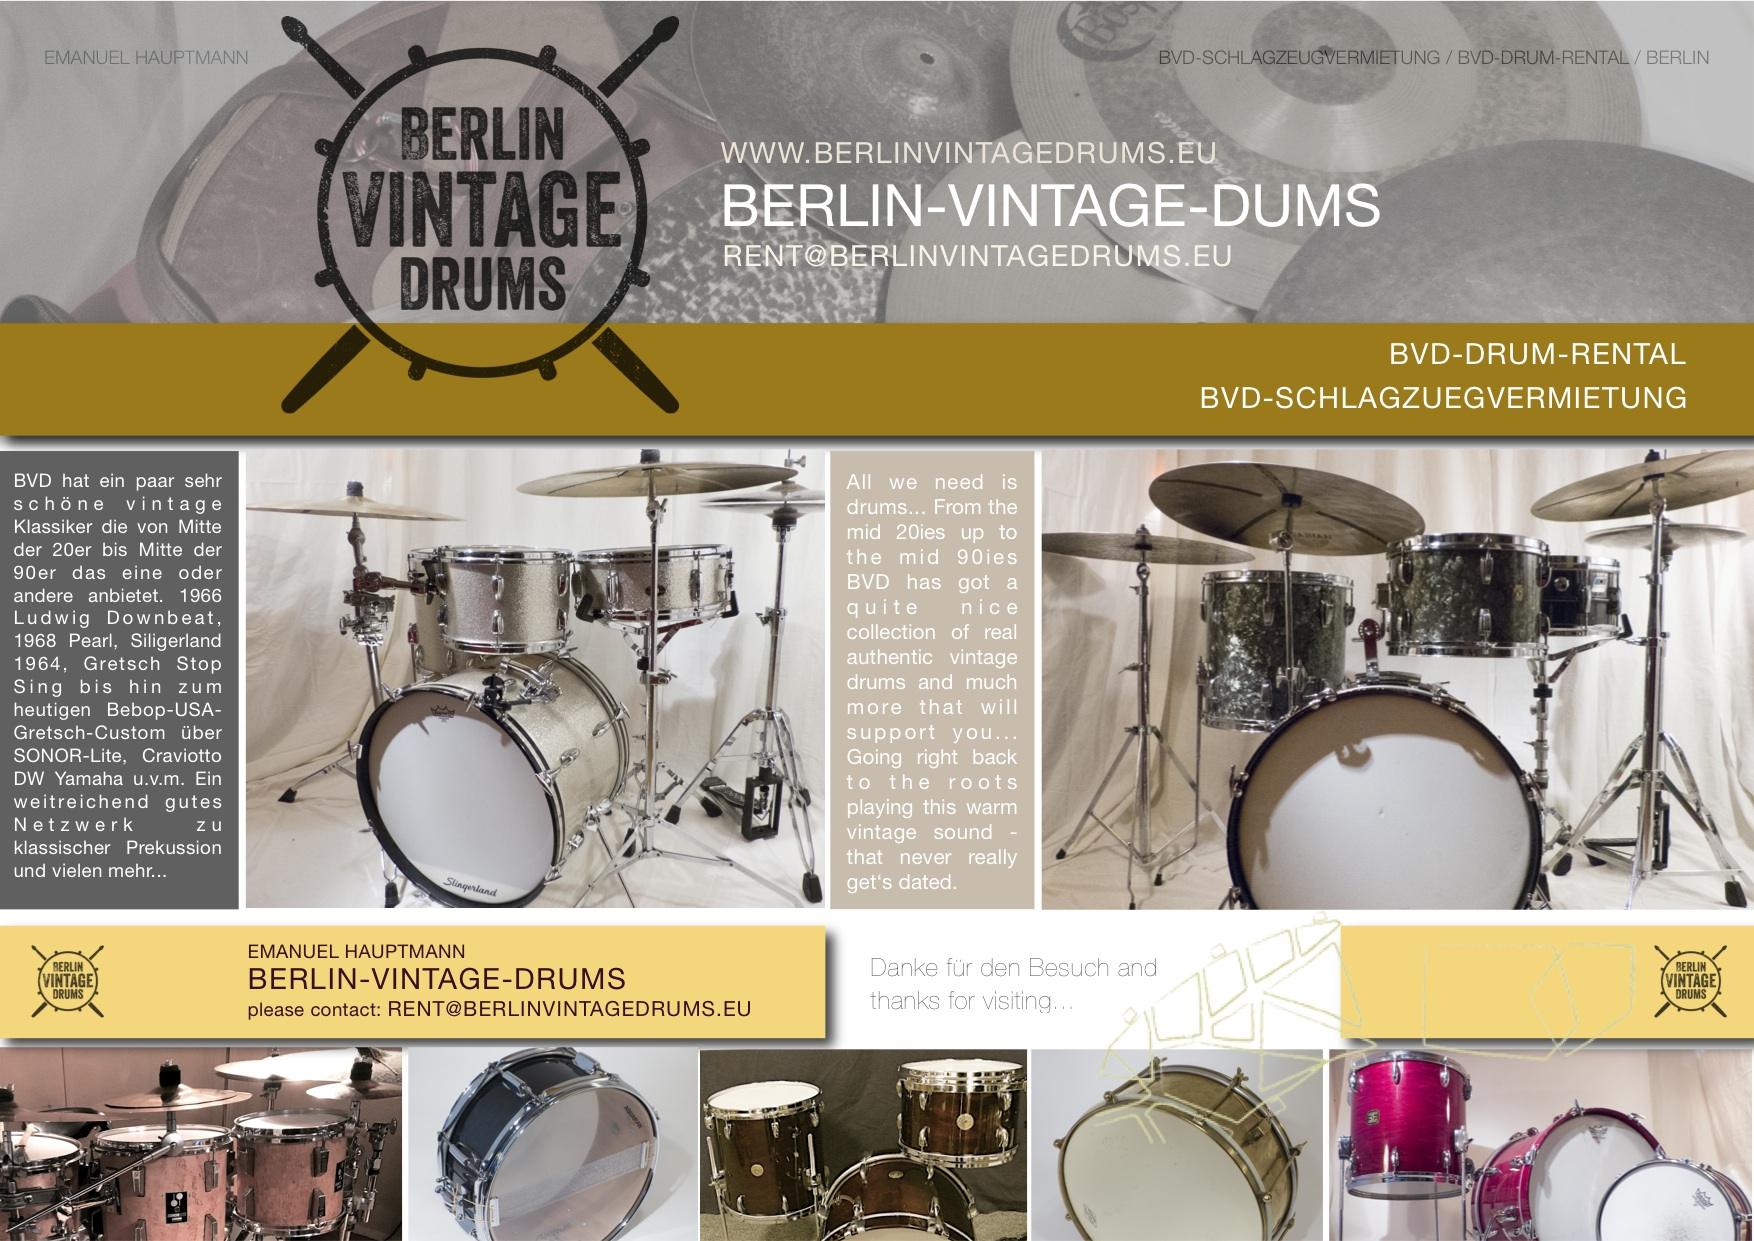 Berlin Vintage Drums